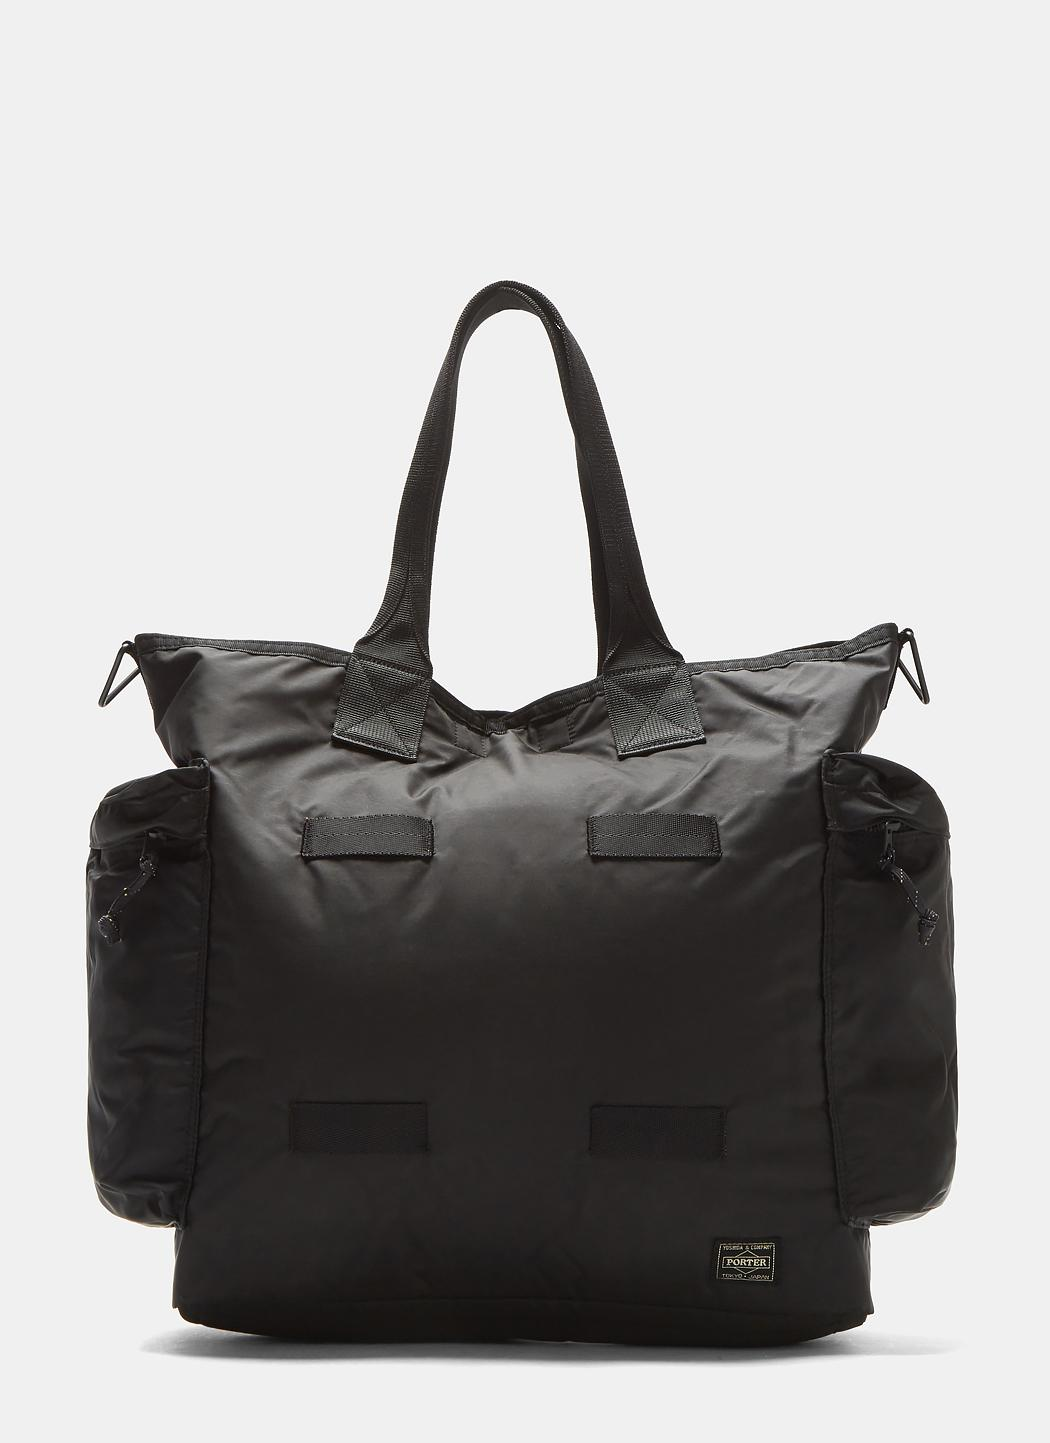 Lyst - Porter 2-way Tote Bag In Black in Black b9768bb7db73d